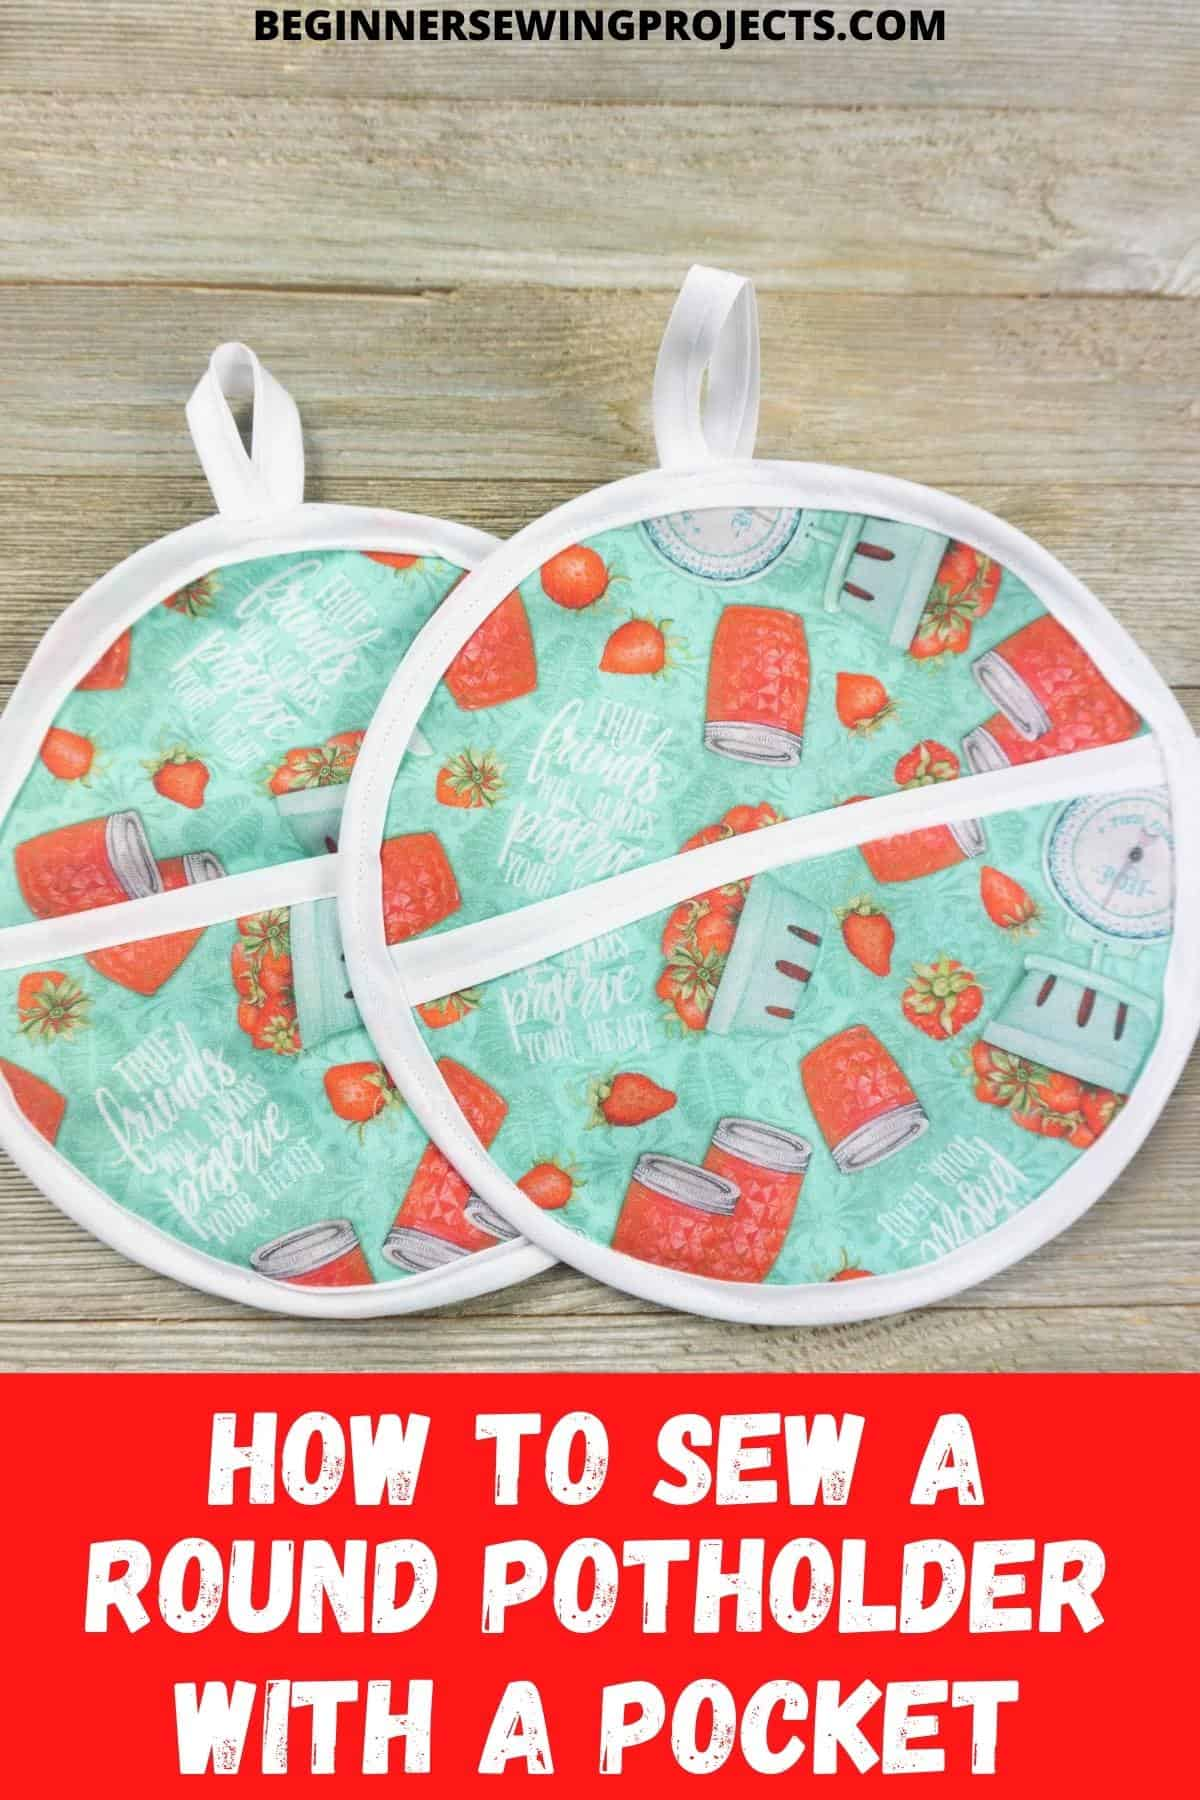 How To Sew A Round Potholder With A Pocket